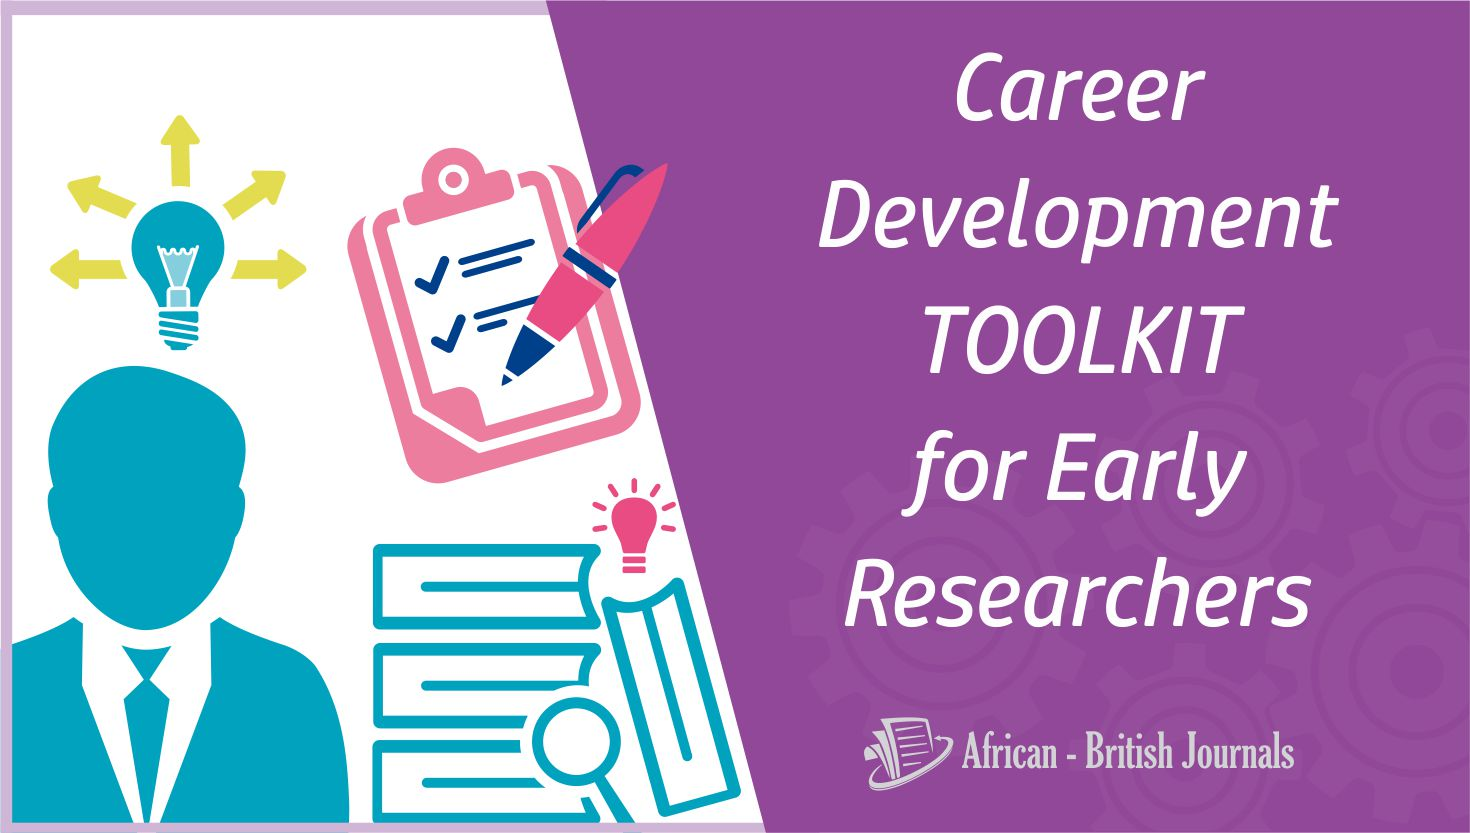 Career Development Toolkit for Early Researchers